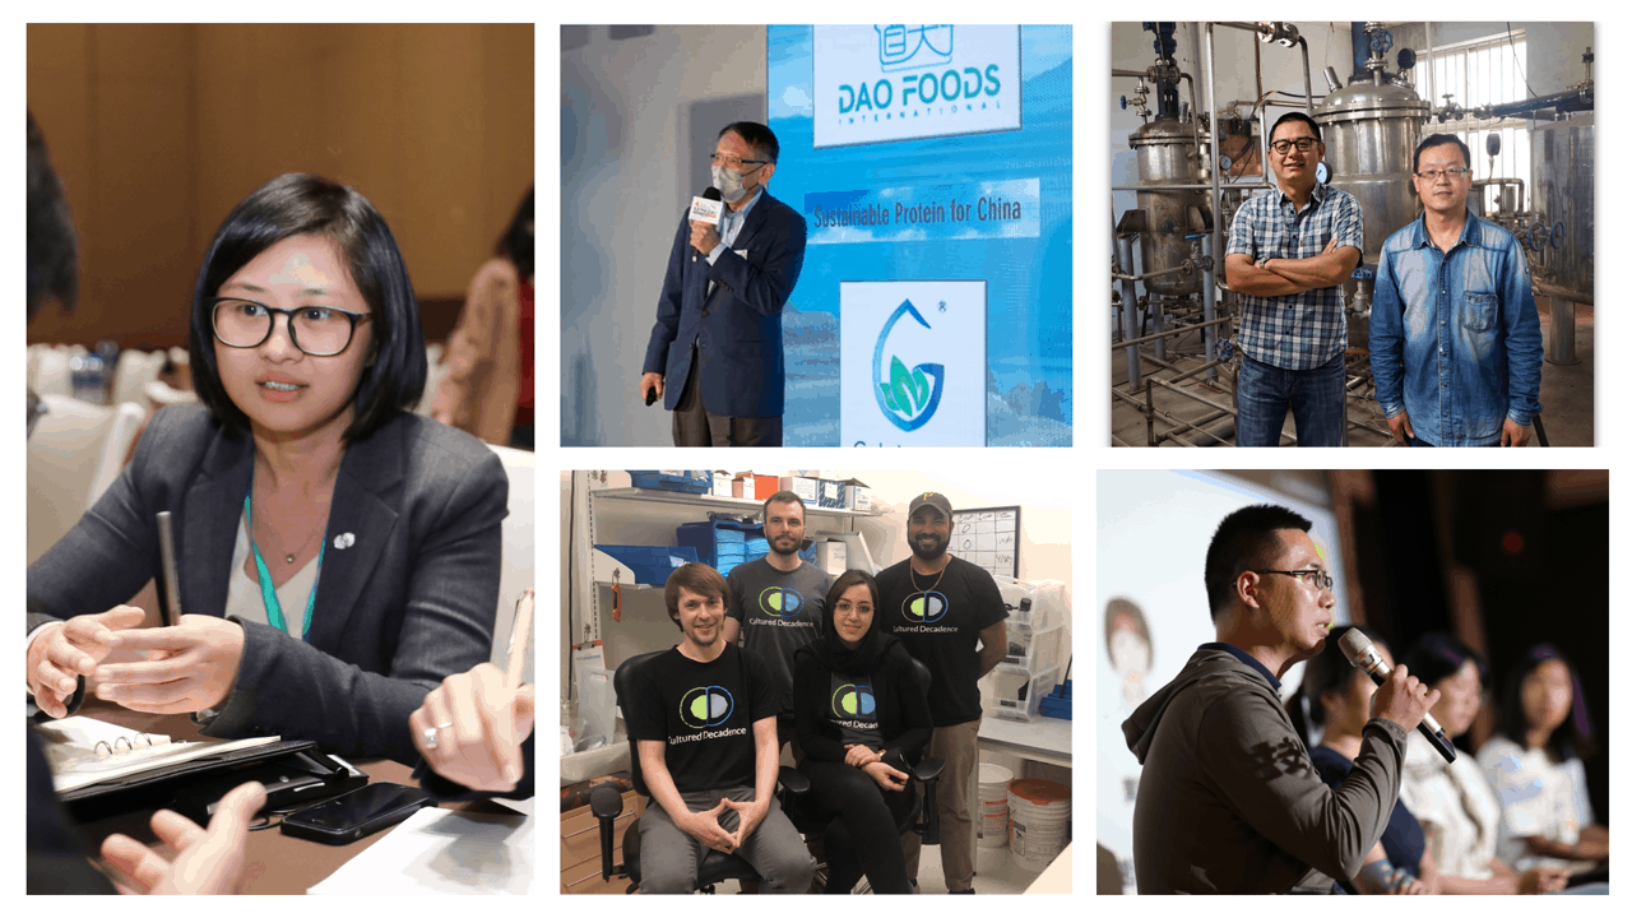 Dao Foods unfazed by China tech crackdown, says alternative proteins aligned with state goals